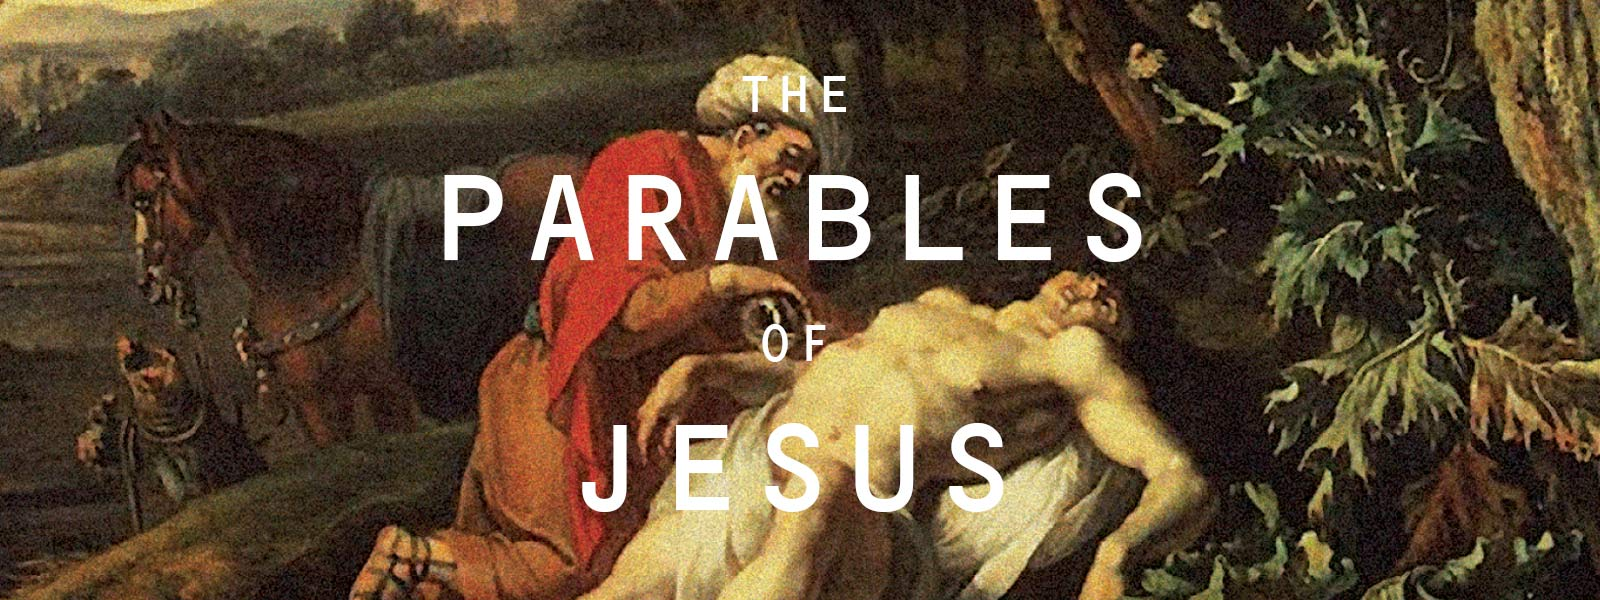 an analysis of the teachings of jesus in the parables With the intention of bolstering authoritative systematic teaching,  exegetical  analysis of jesus' parables not only allow for, but give us.